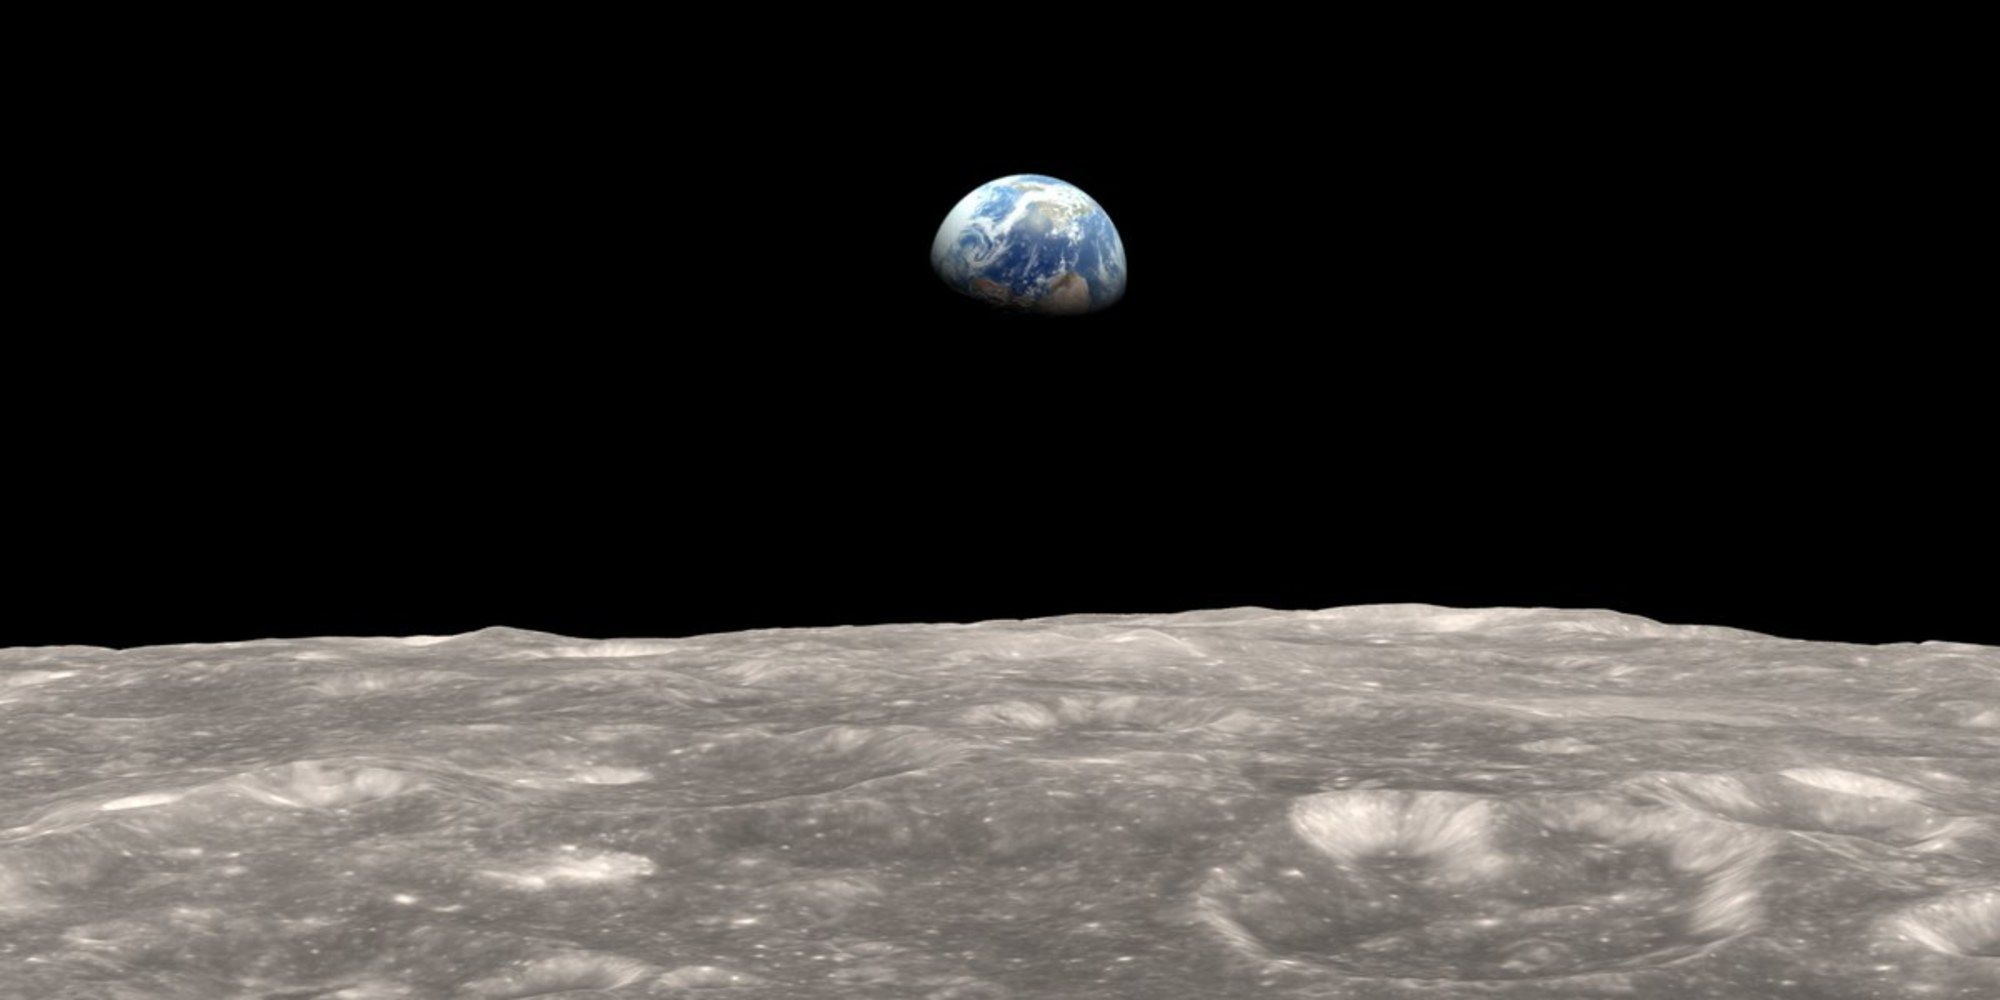 Earth's companion may have formed within 60 million years after the birth  of the solar system, setting the stage for an earlier evolution of life.